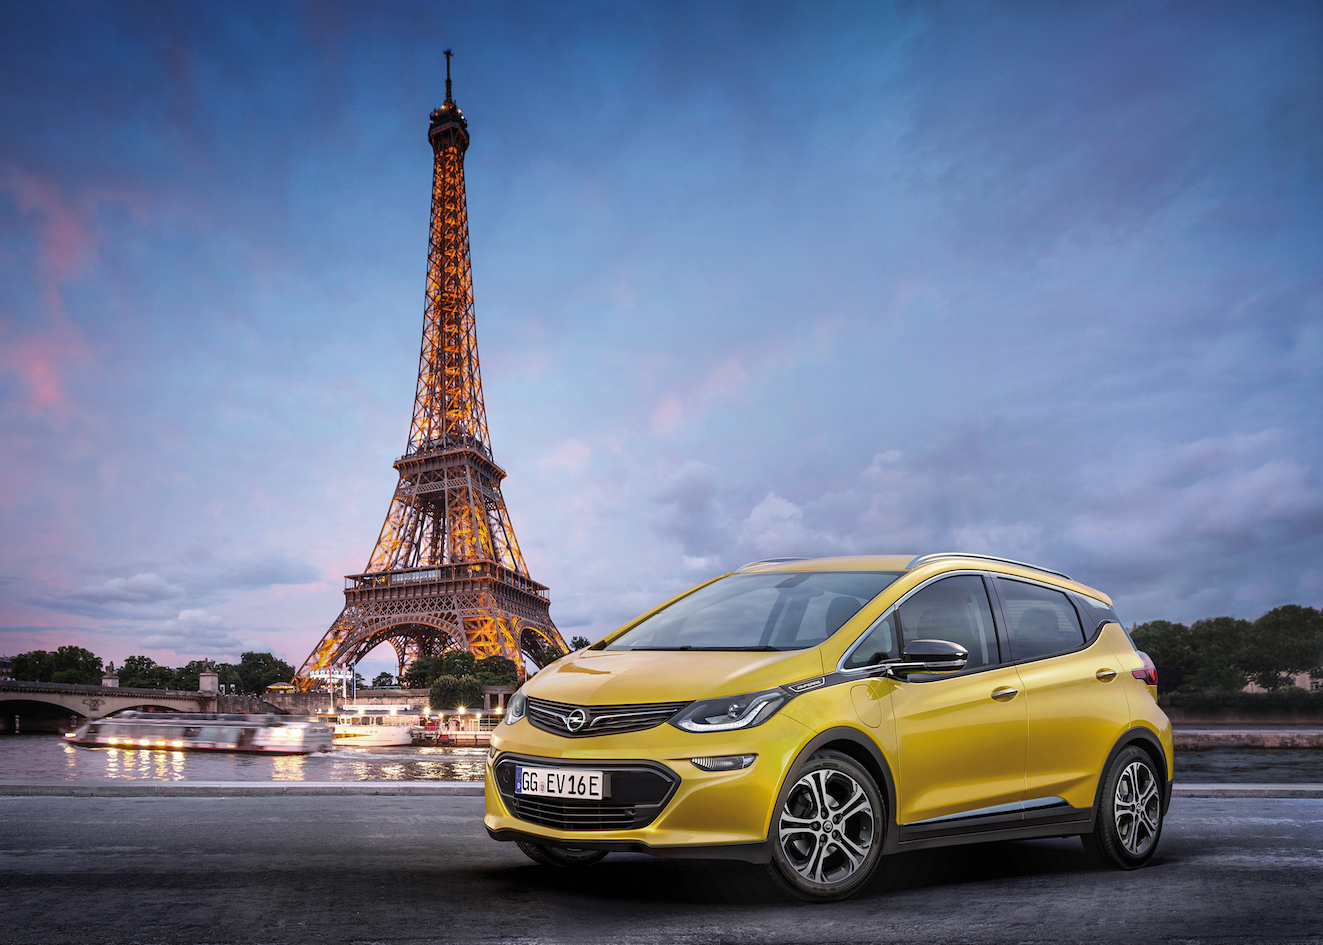 Opel Ampera-e On Sale... Will We See It With A Holden Badge?